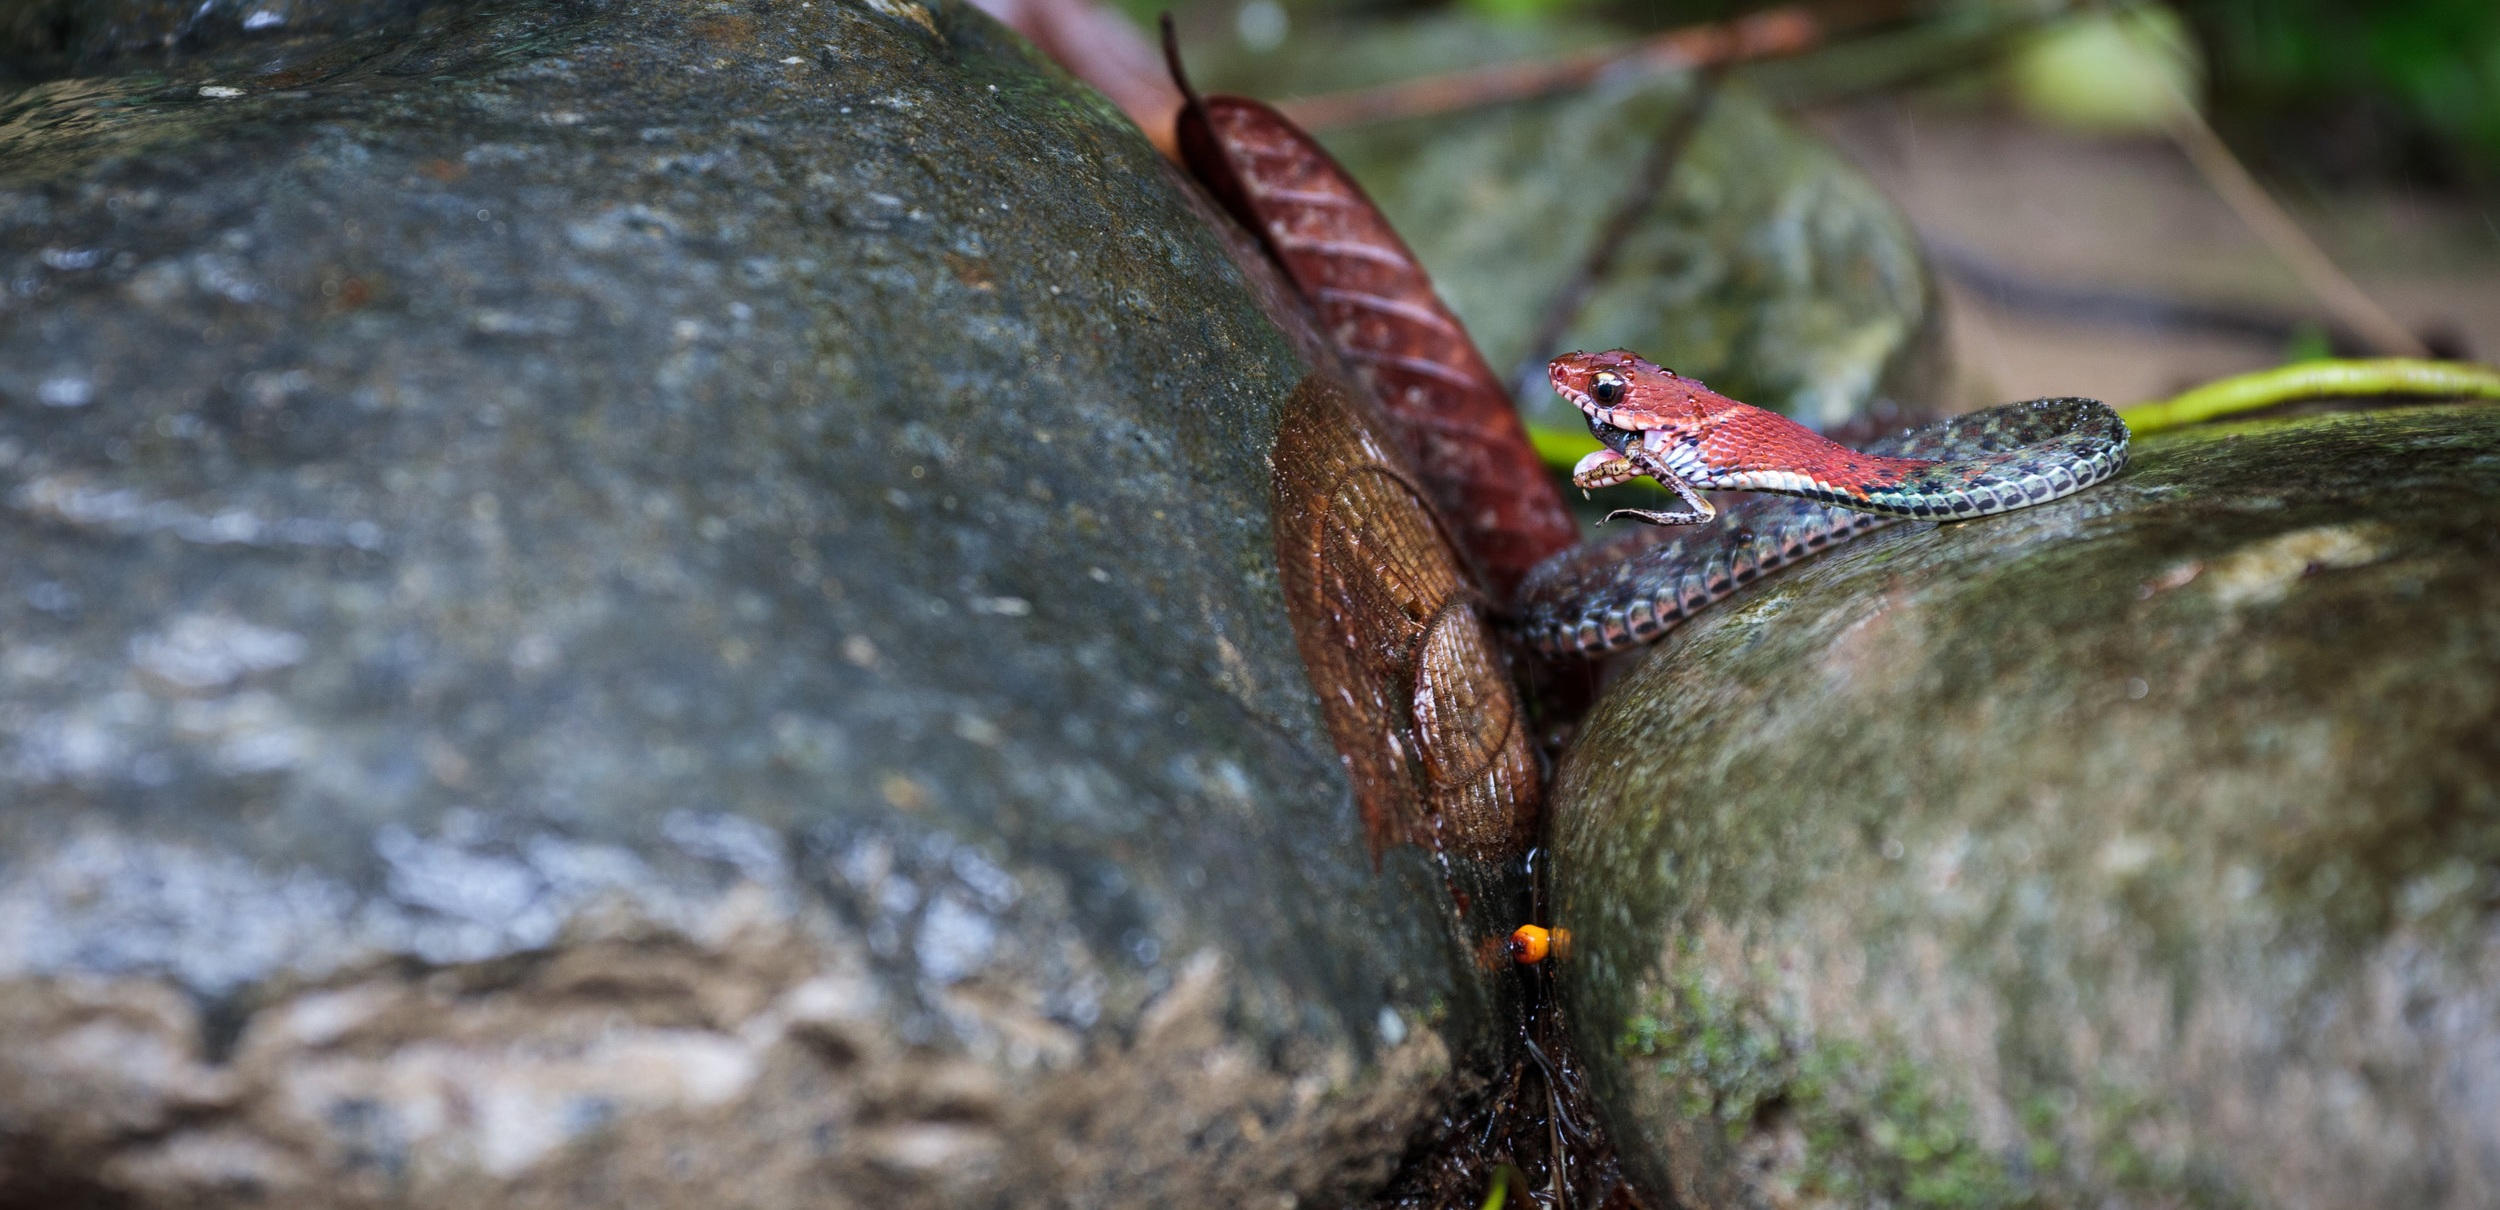 Red-headed krait (Bungarus flaviceps) eating a frog in Bukit Lawang, Indonesia.